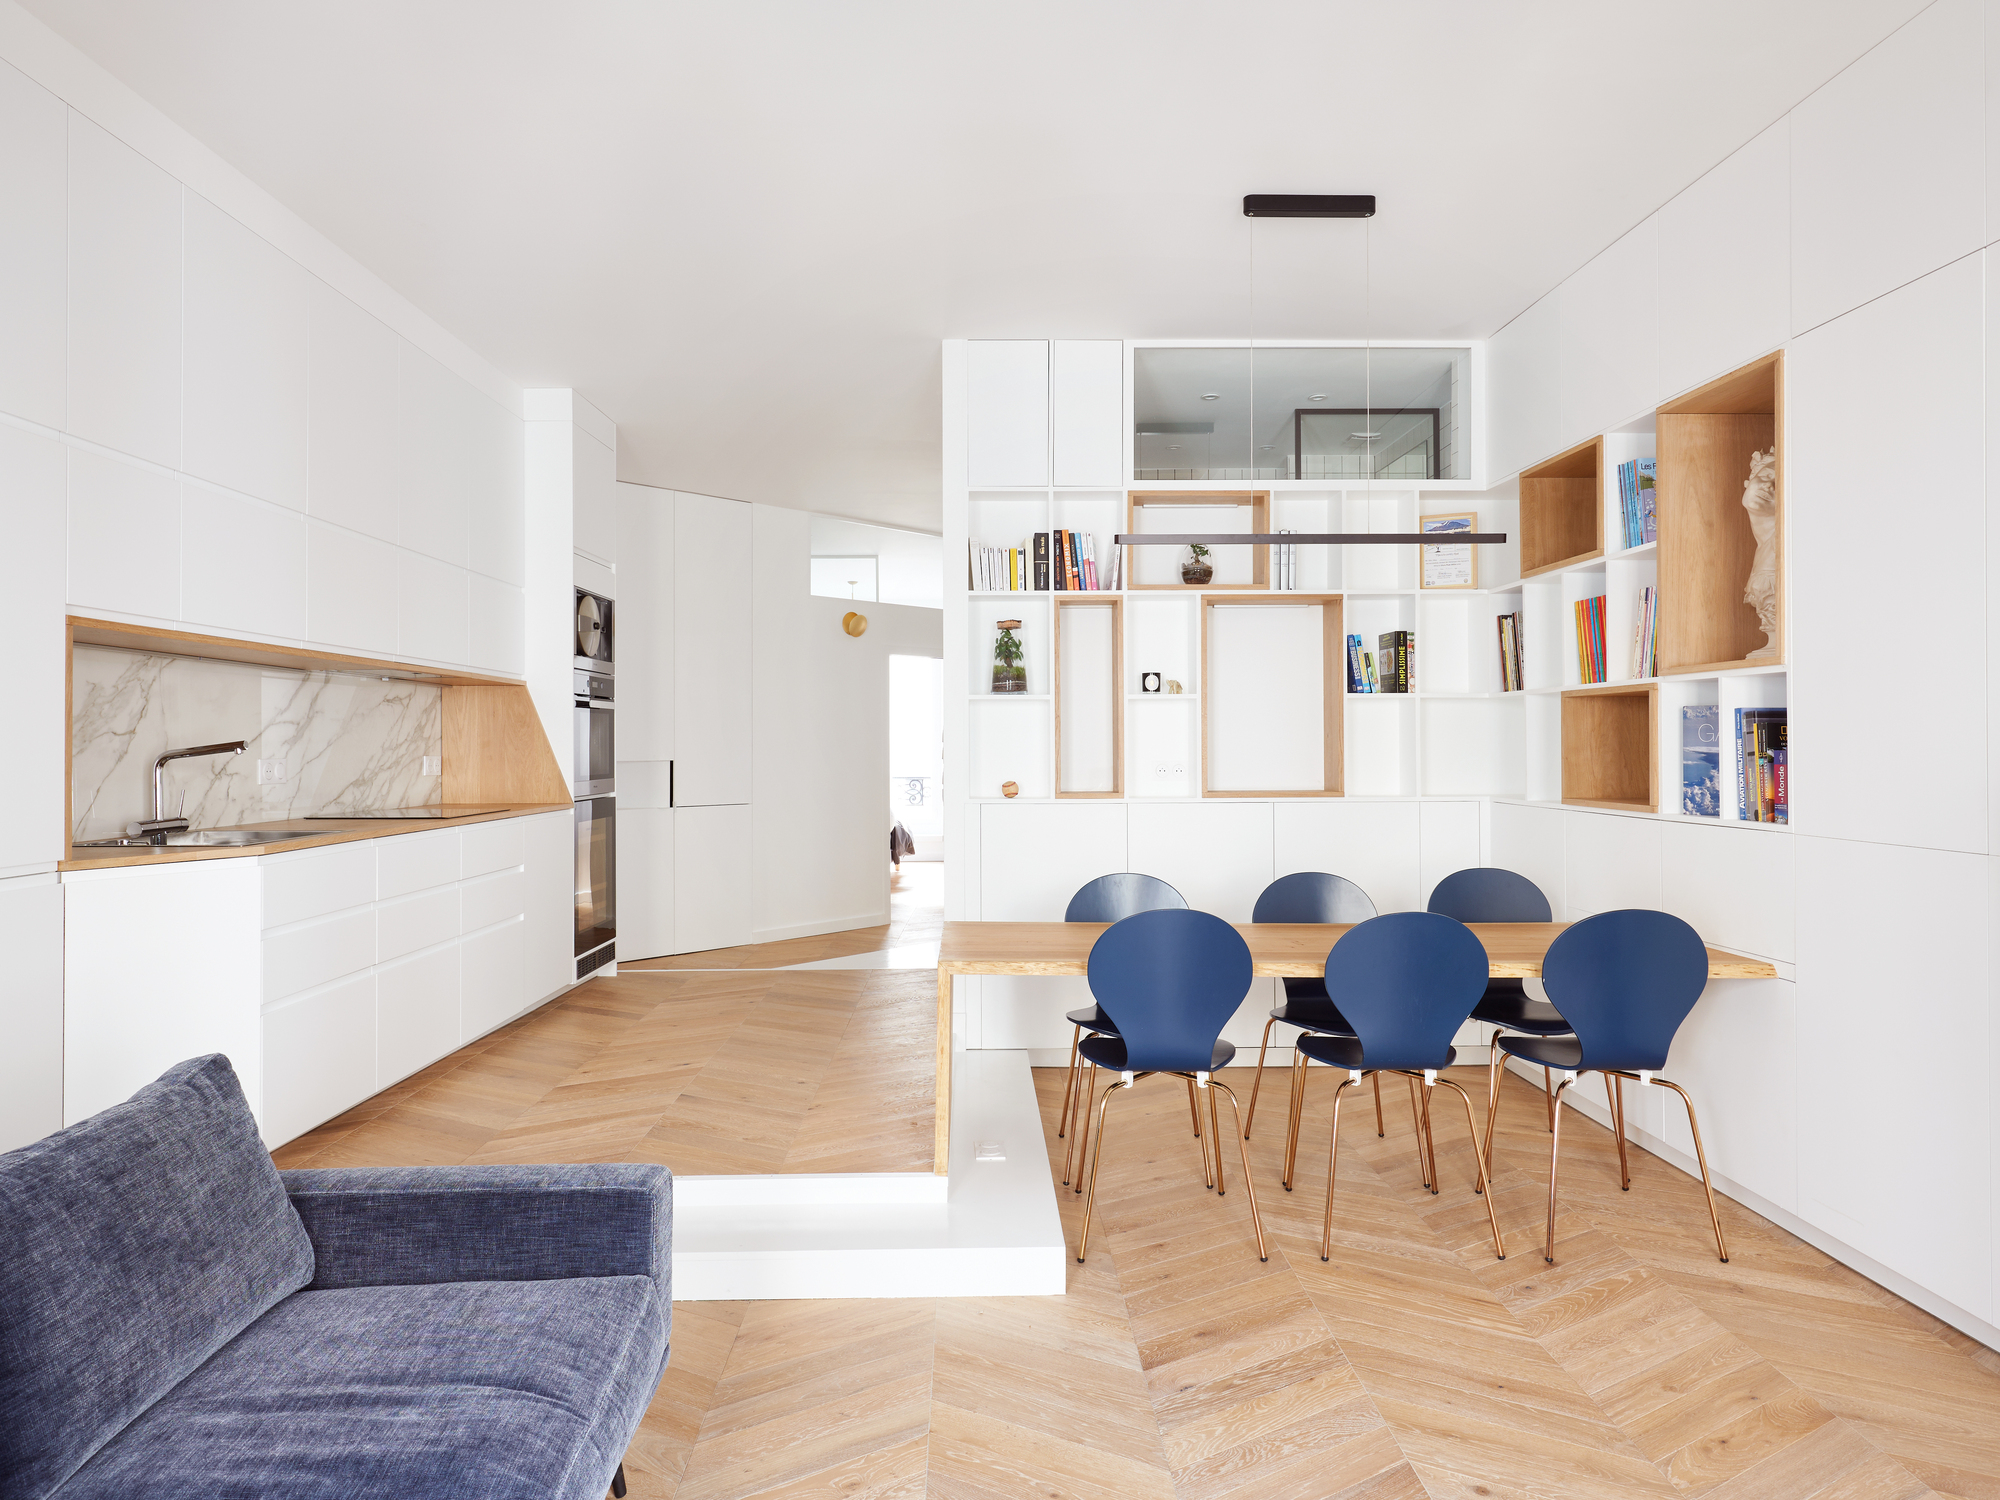 Saint-Denis Apartment / JPRCR Architecture